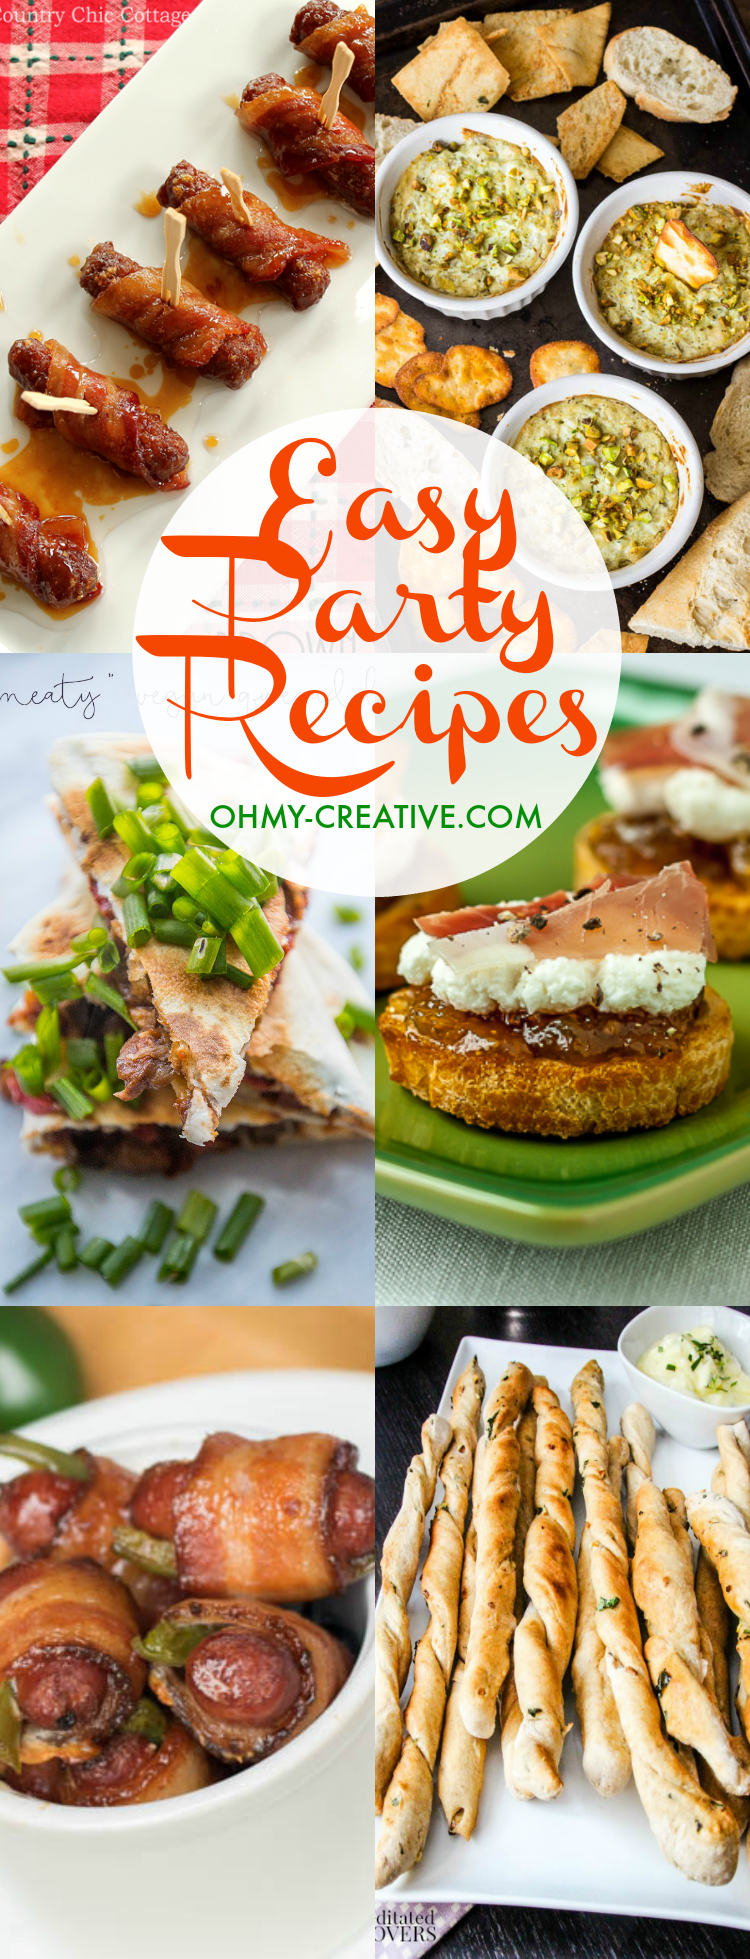 The Kitchen Patriotic Party Recipes